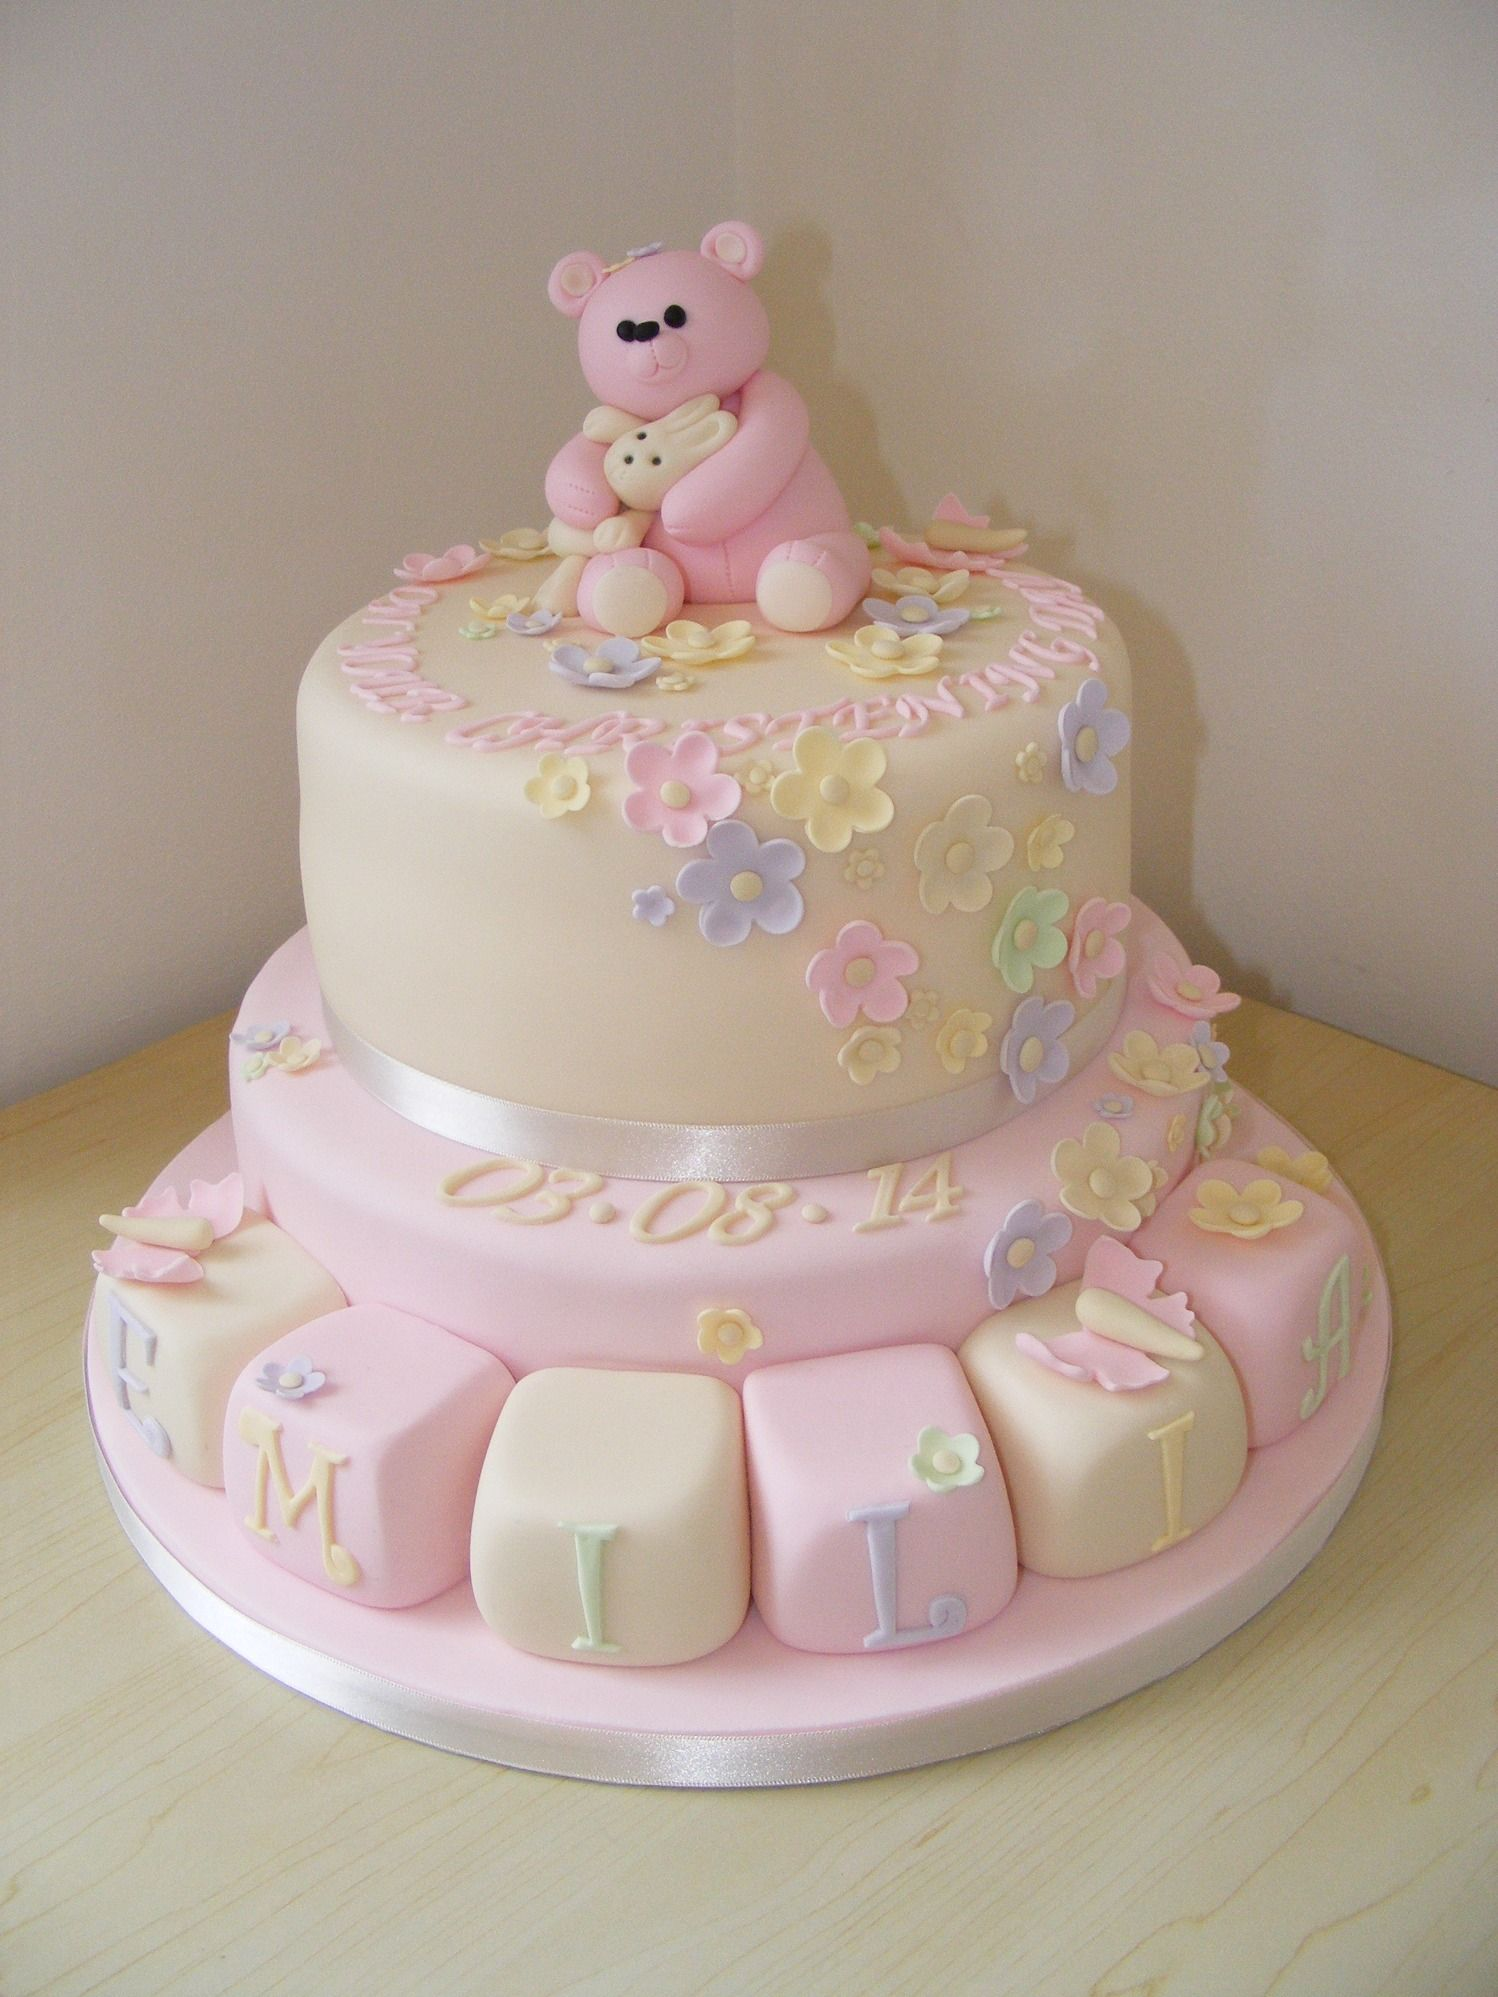 Christening Cake Design For Baby Girl : Girls 2 Tier Christening Cake Christening Ideas ...